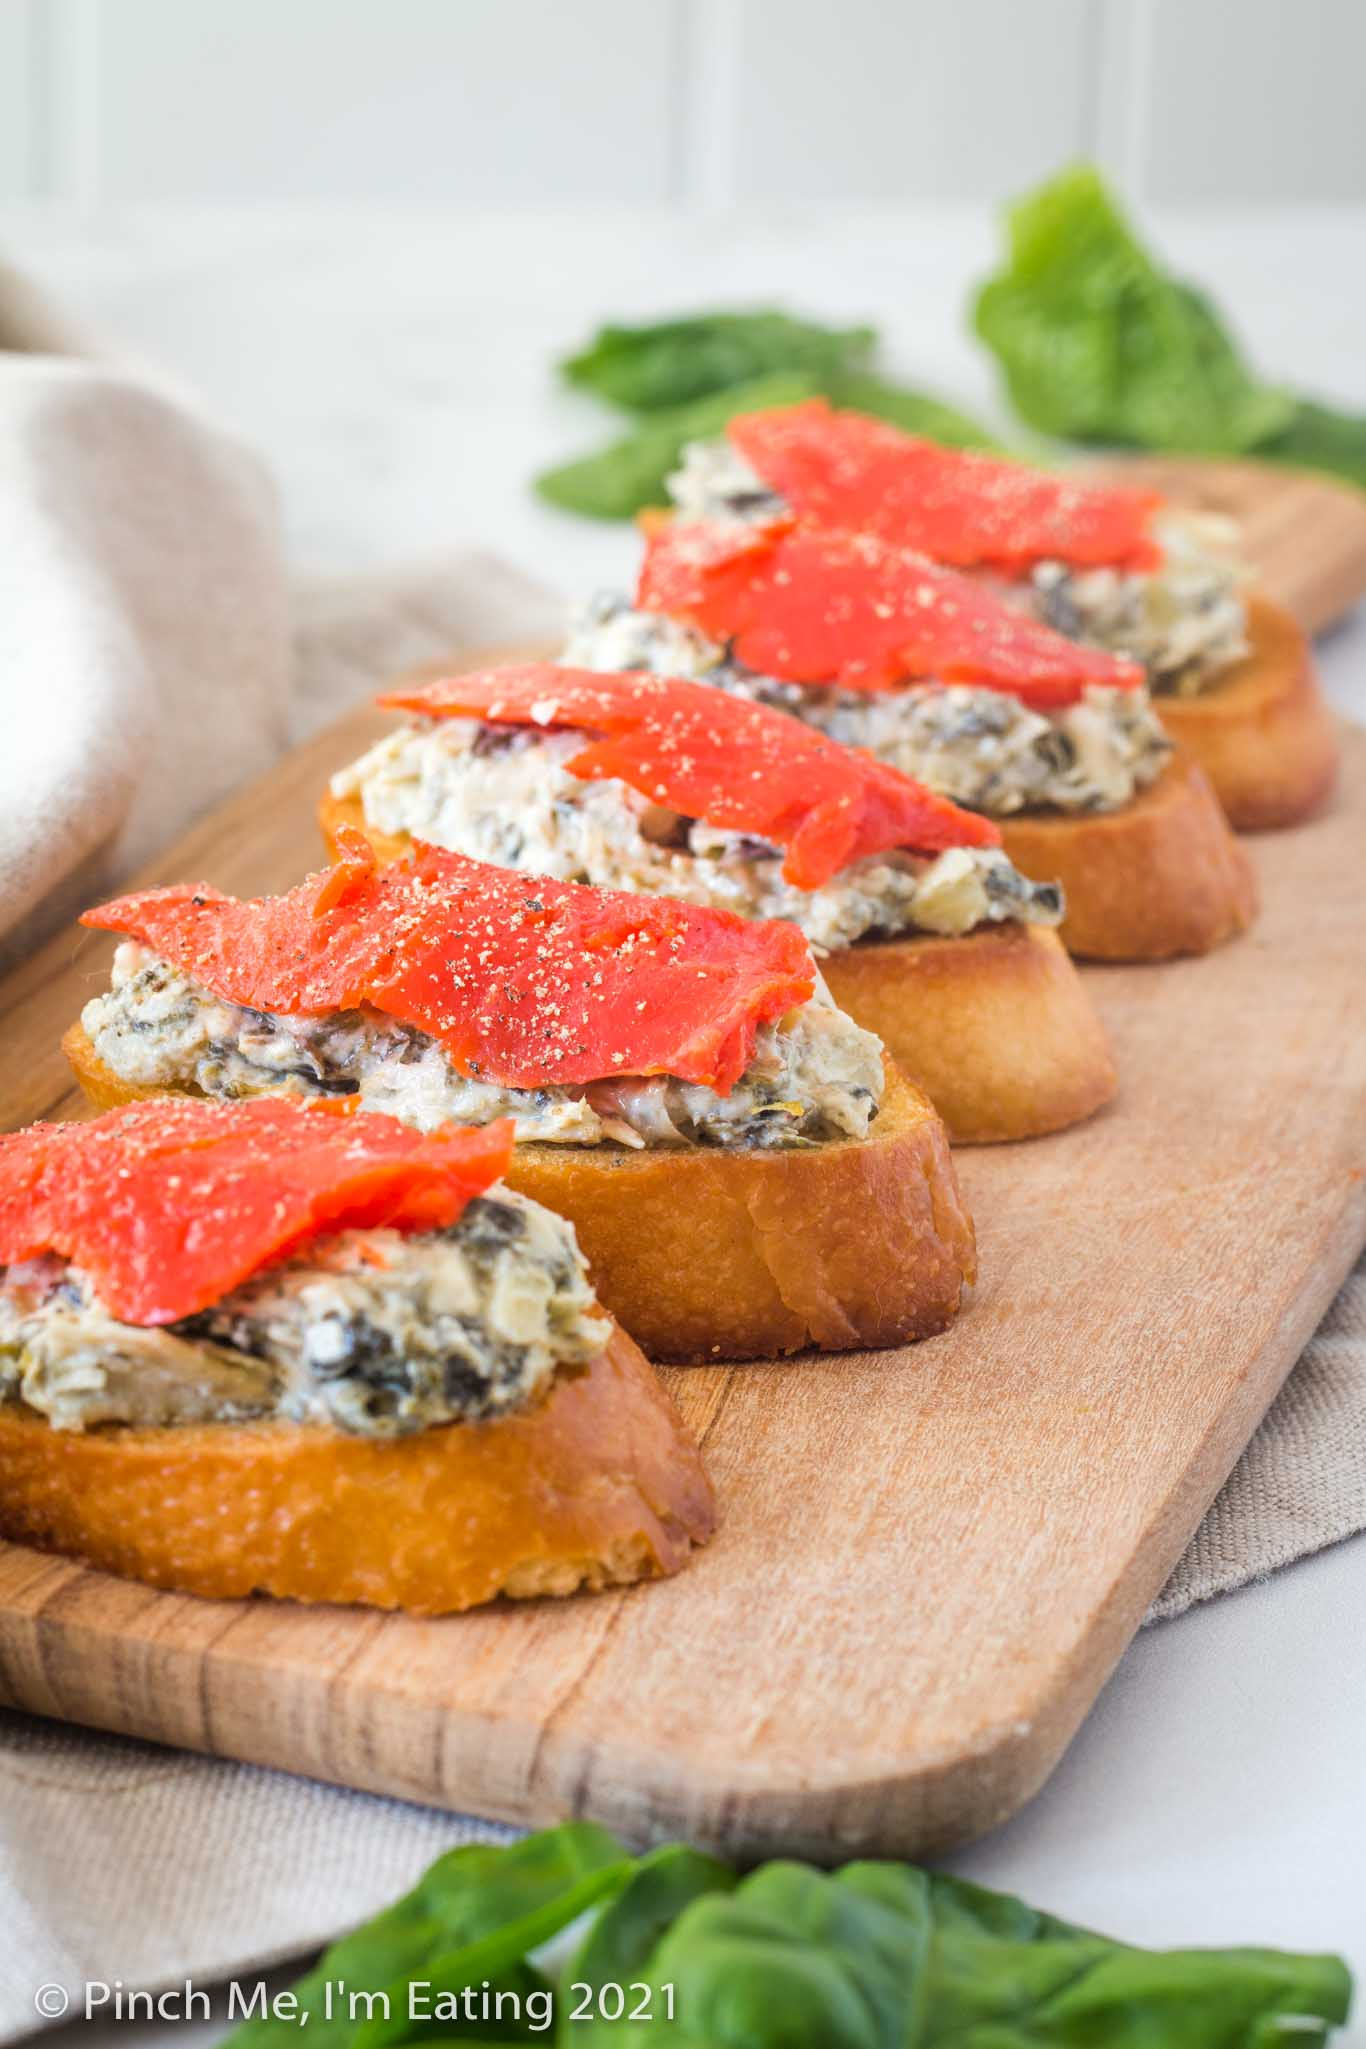 Spinach artichoke crostini with smoked salmon on a wooden cutting board